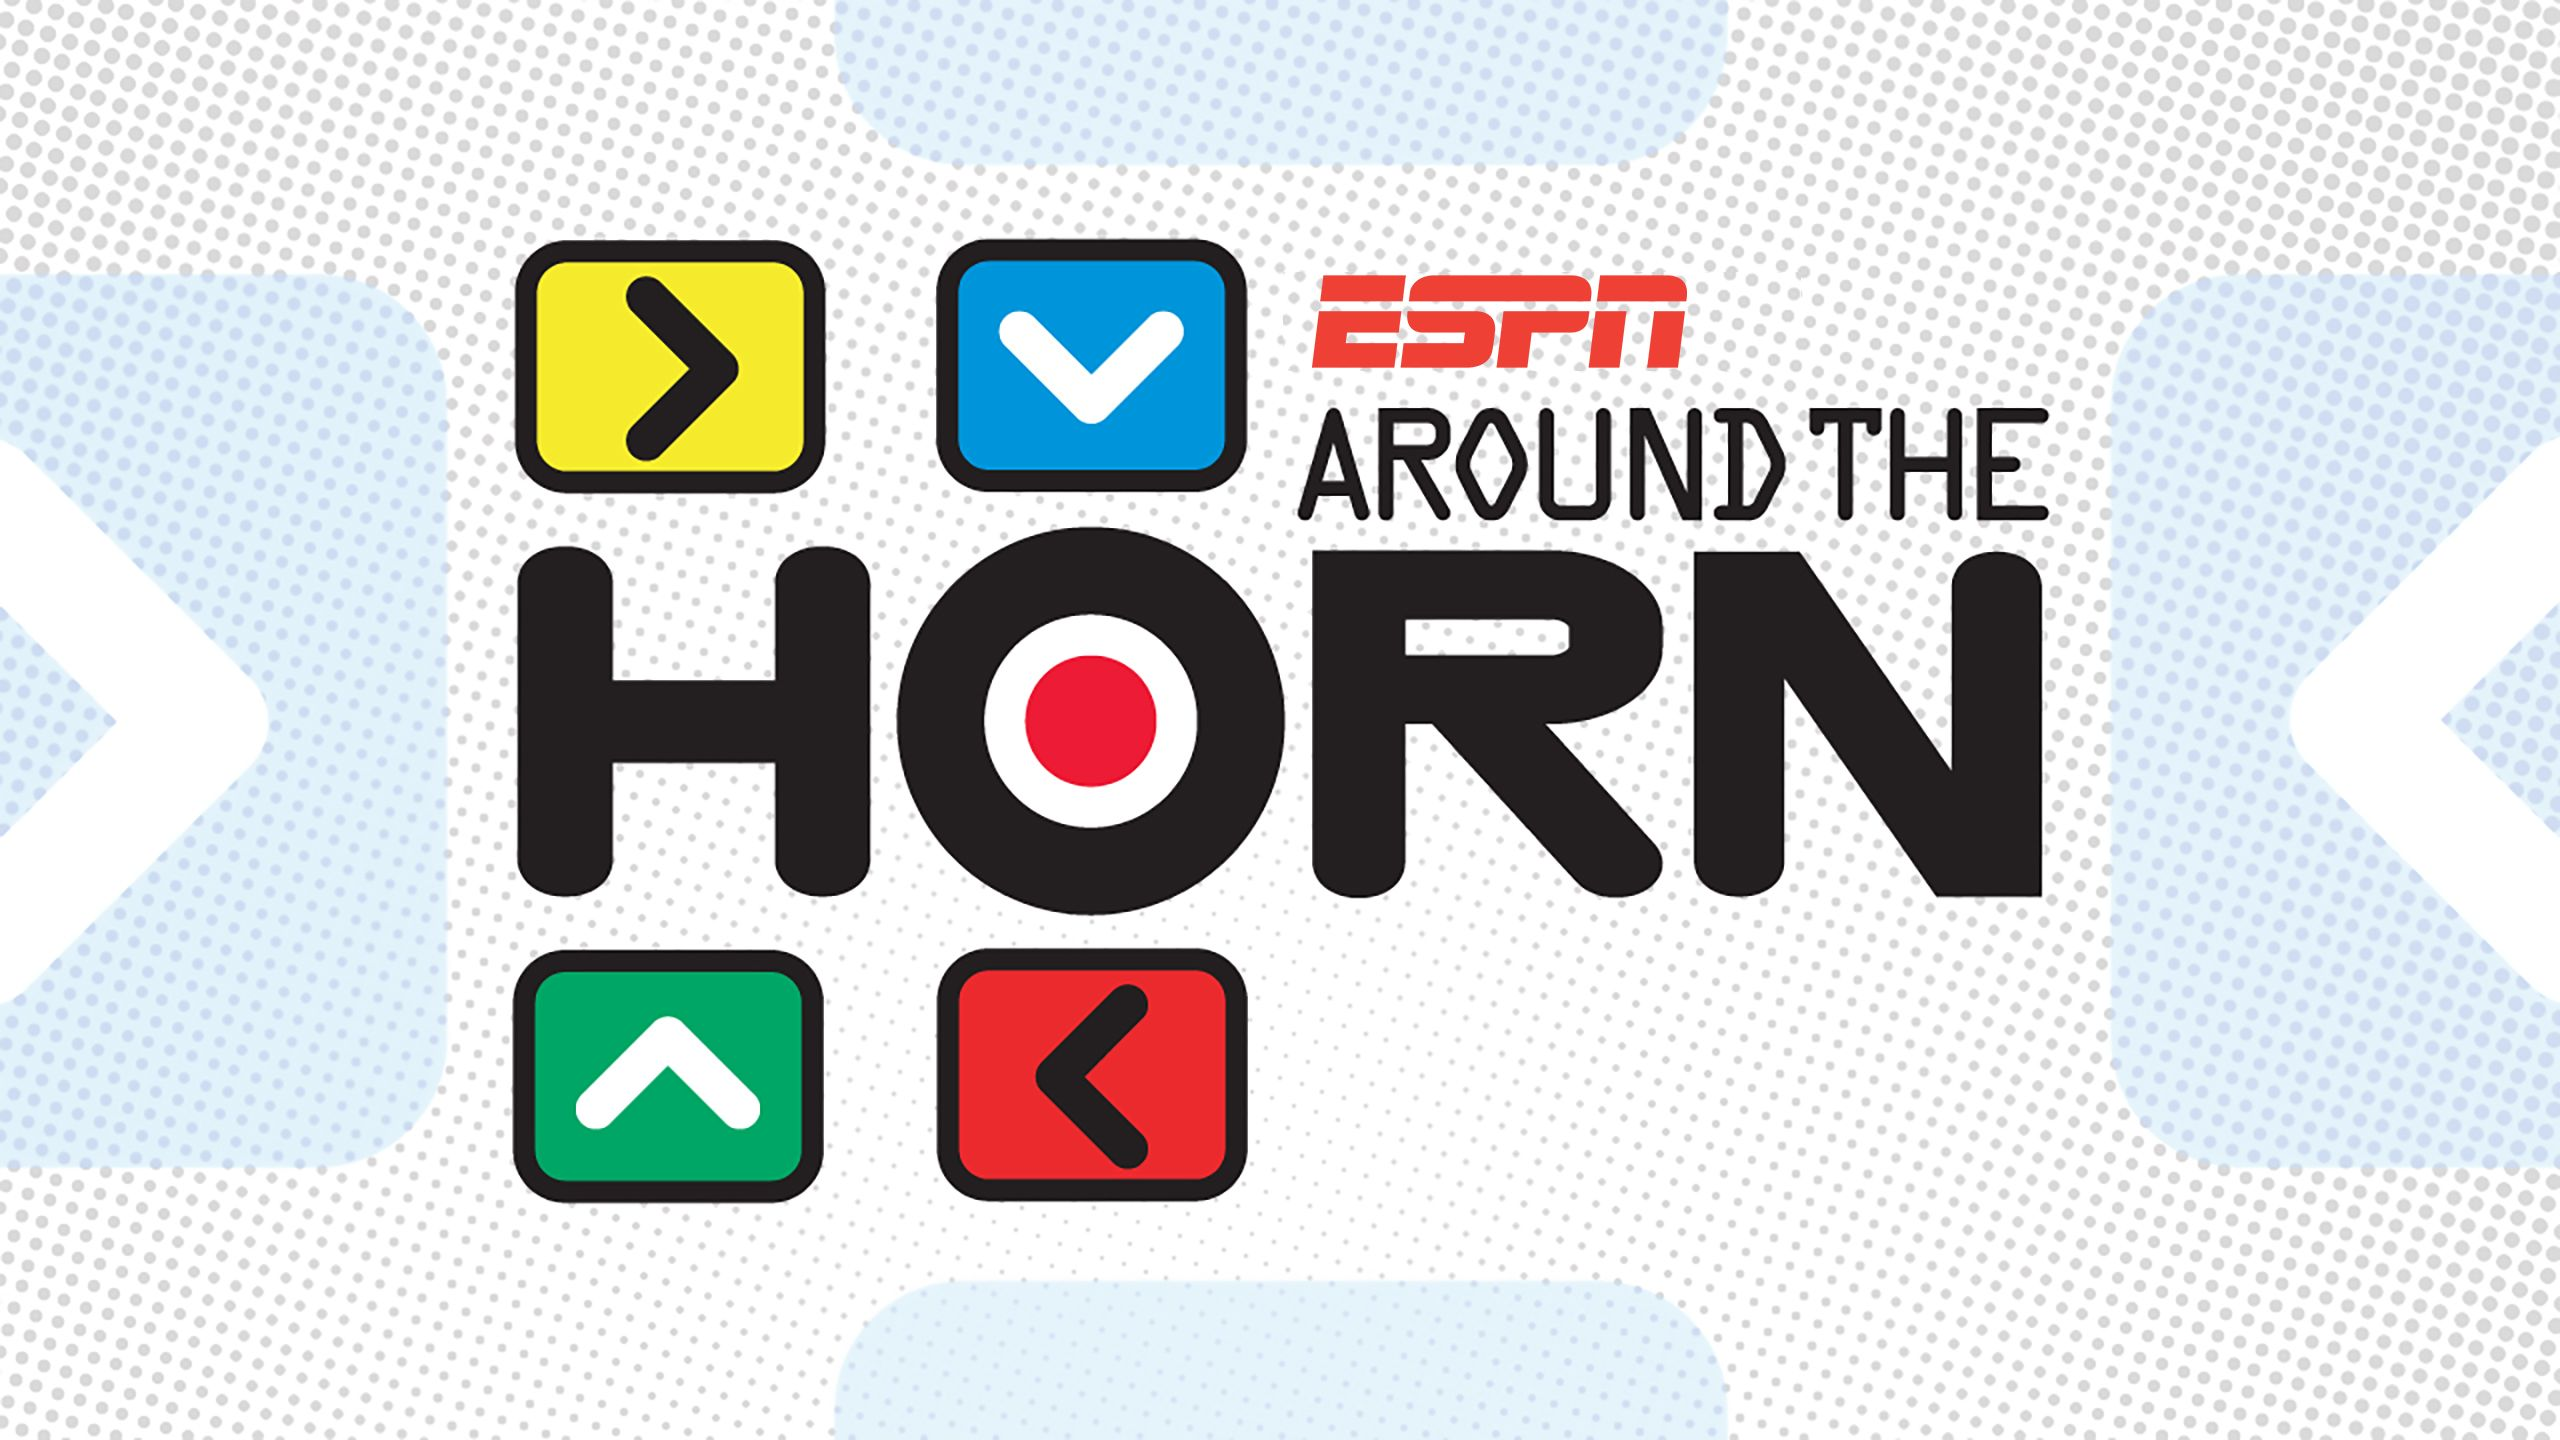 Thu, 4/19 - Around The Horn